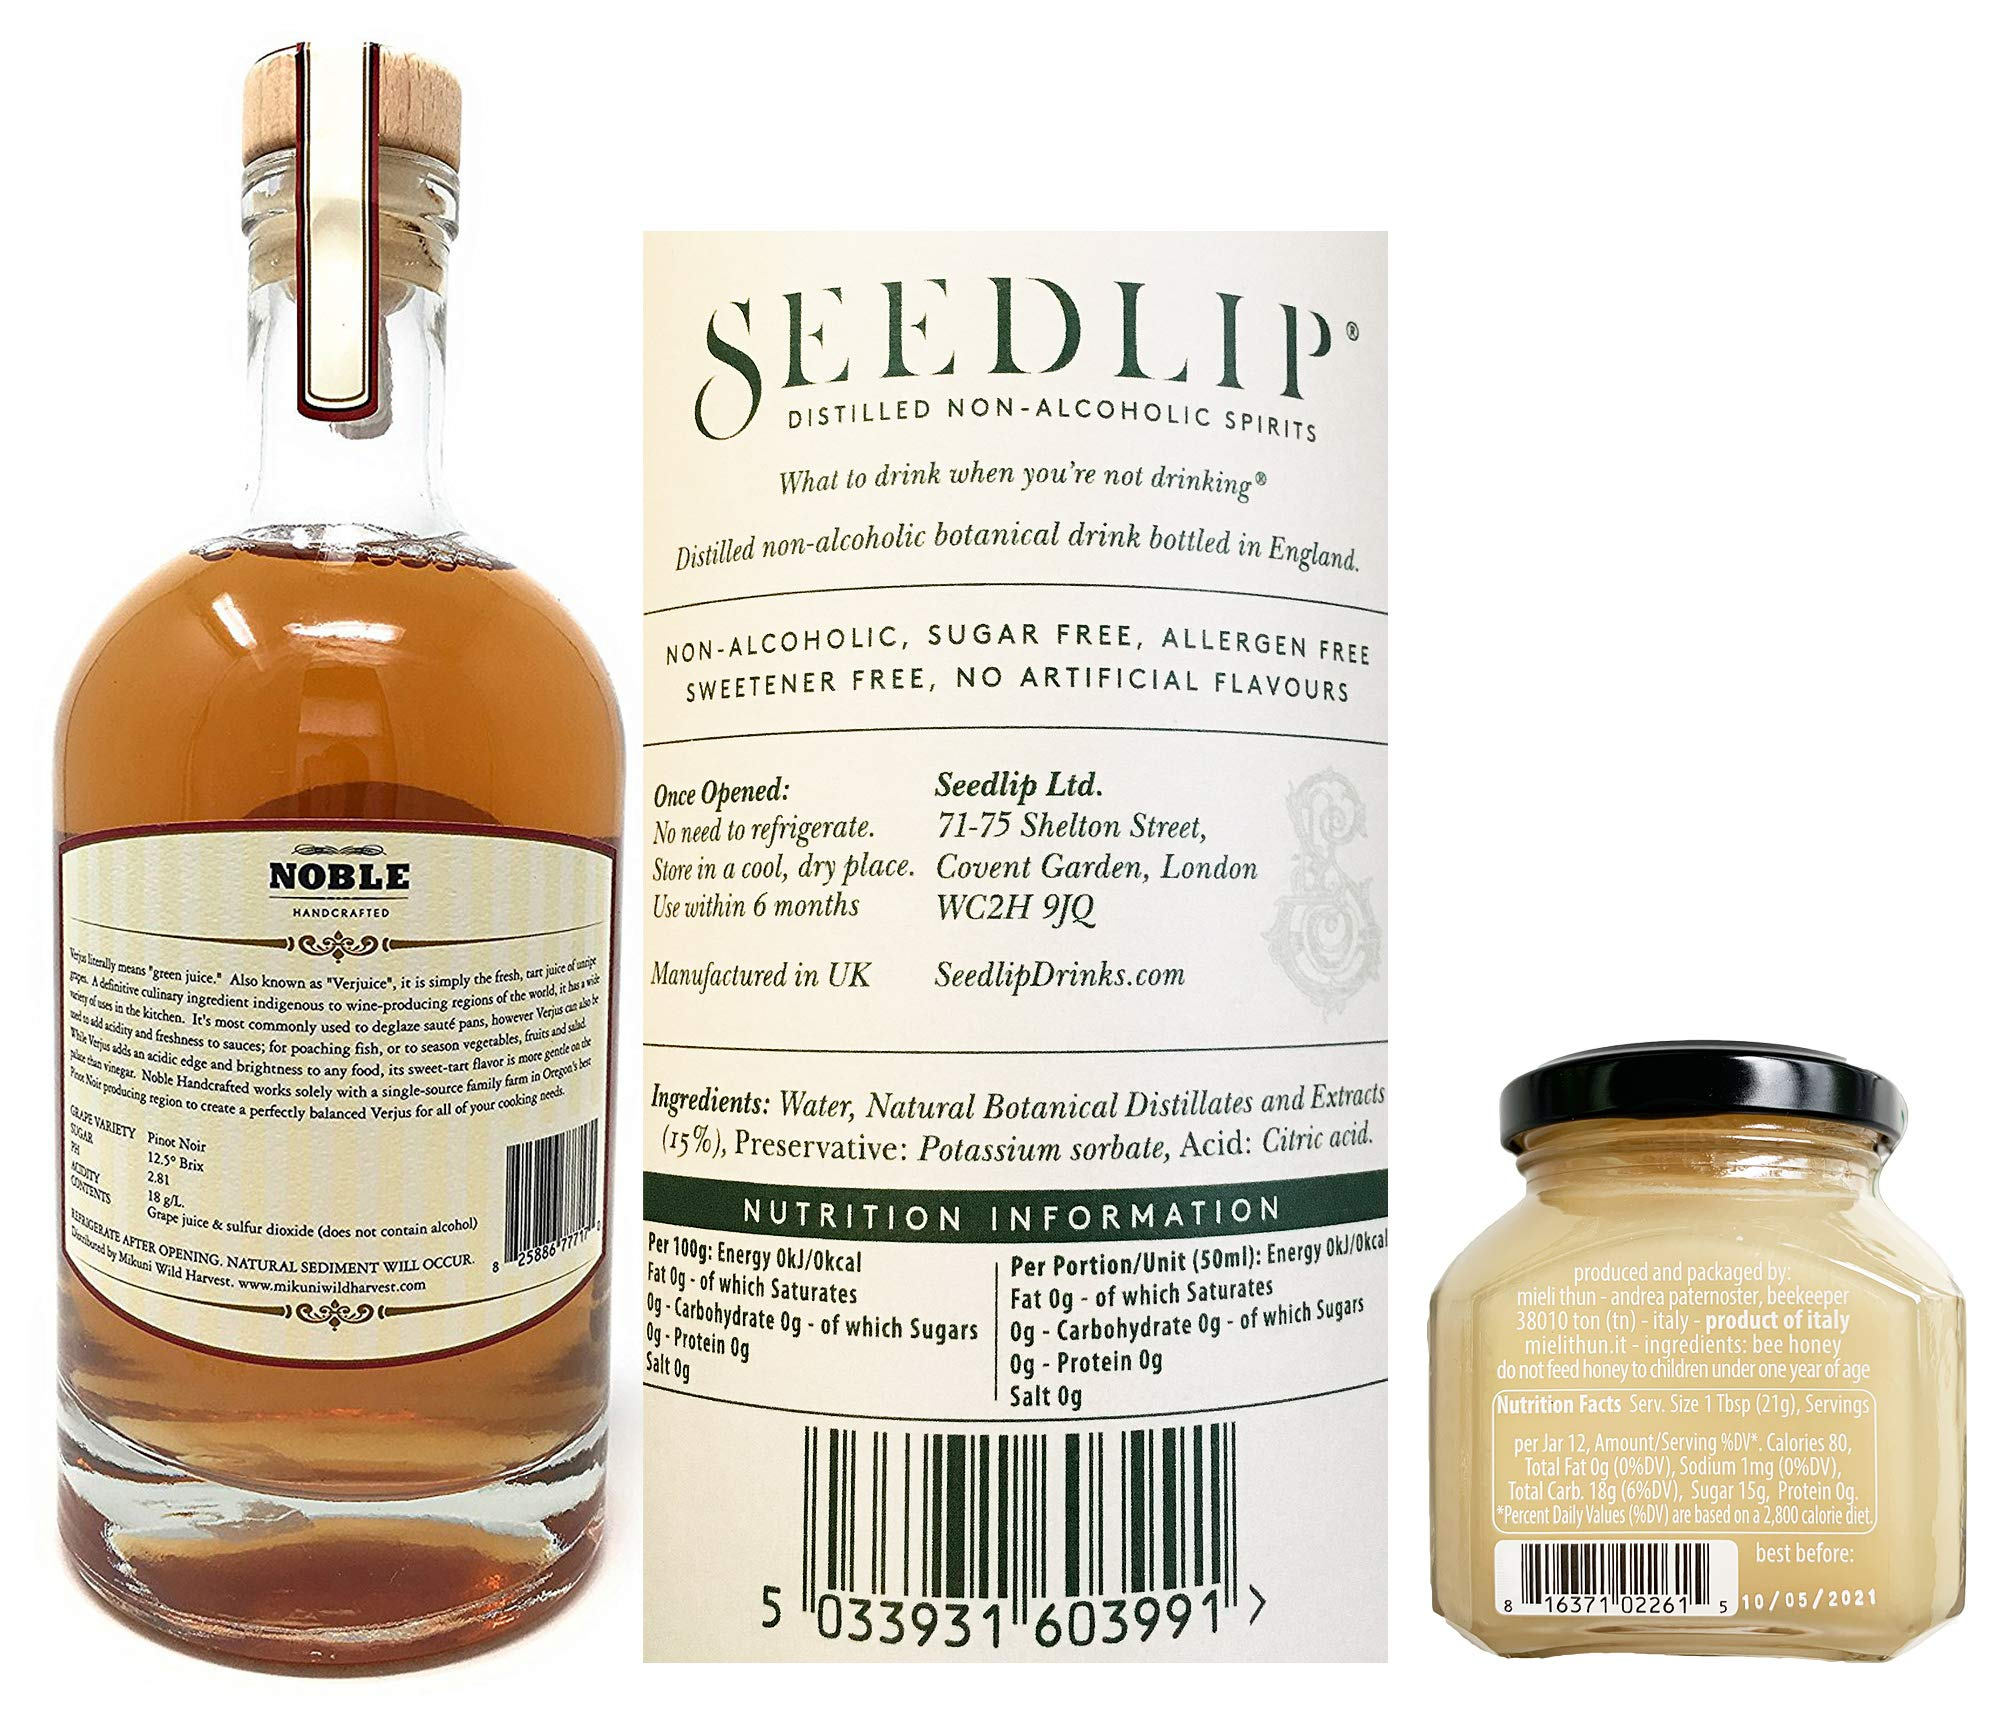 Seedlip Grove 1542 Vintage Bundle (5 Items) by The Curated Pantry (Image #6)